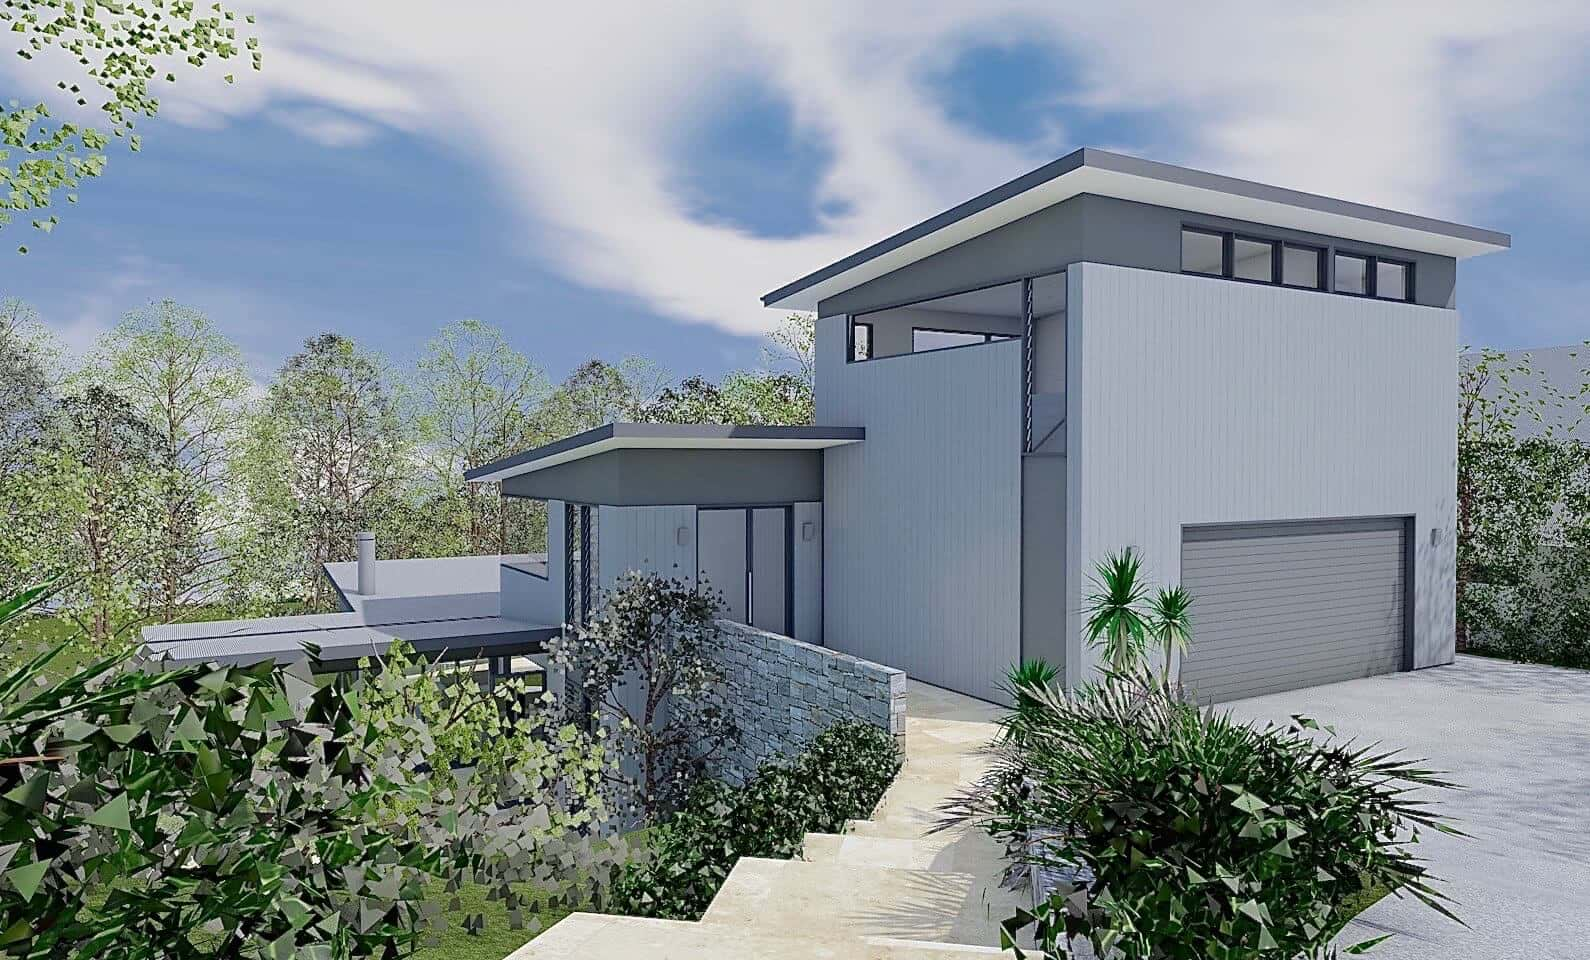 Bush House - View from Driveway - New home concept in 3D designed by All Australian Architecture